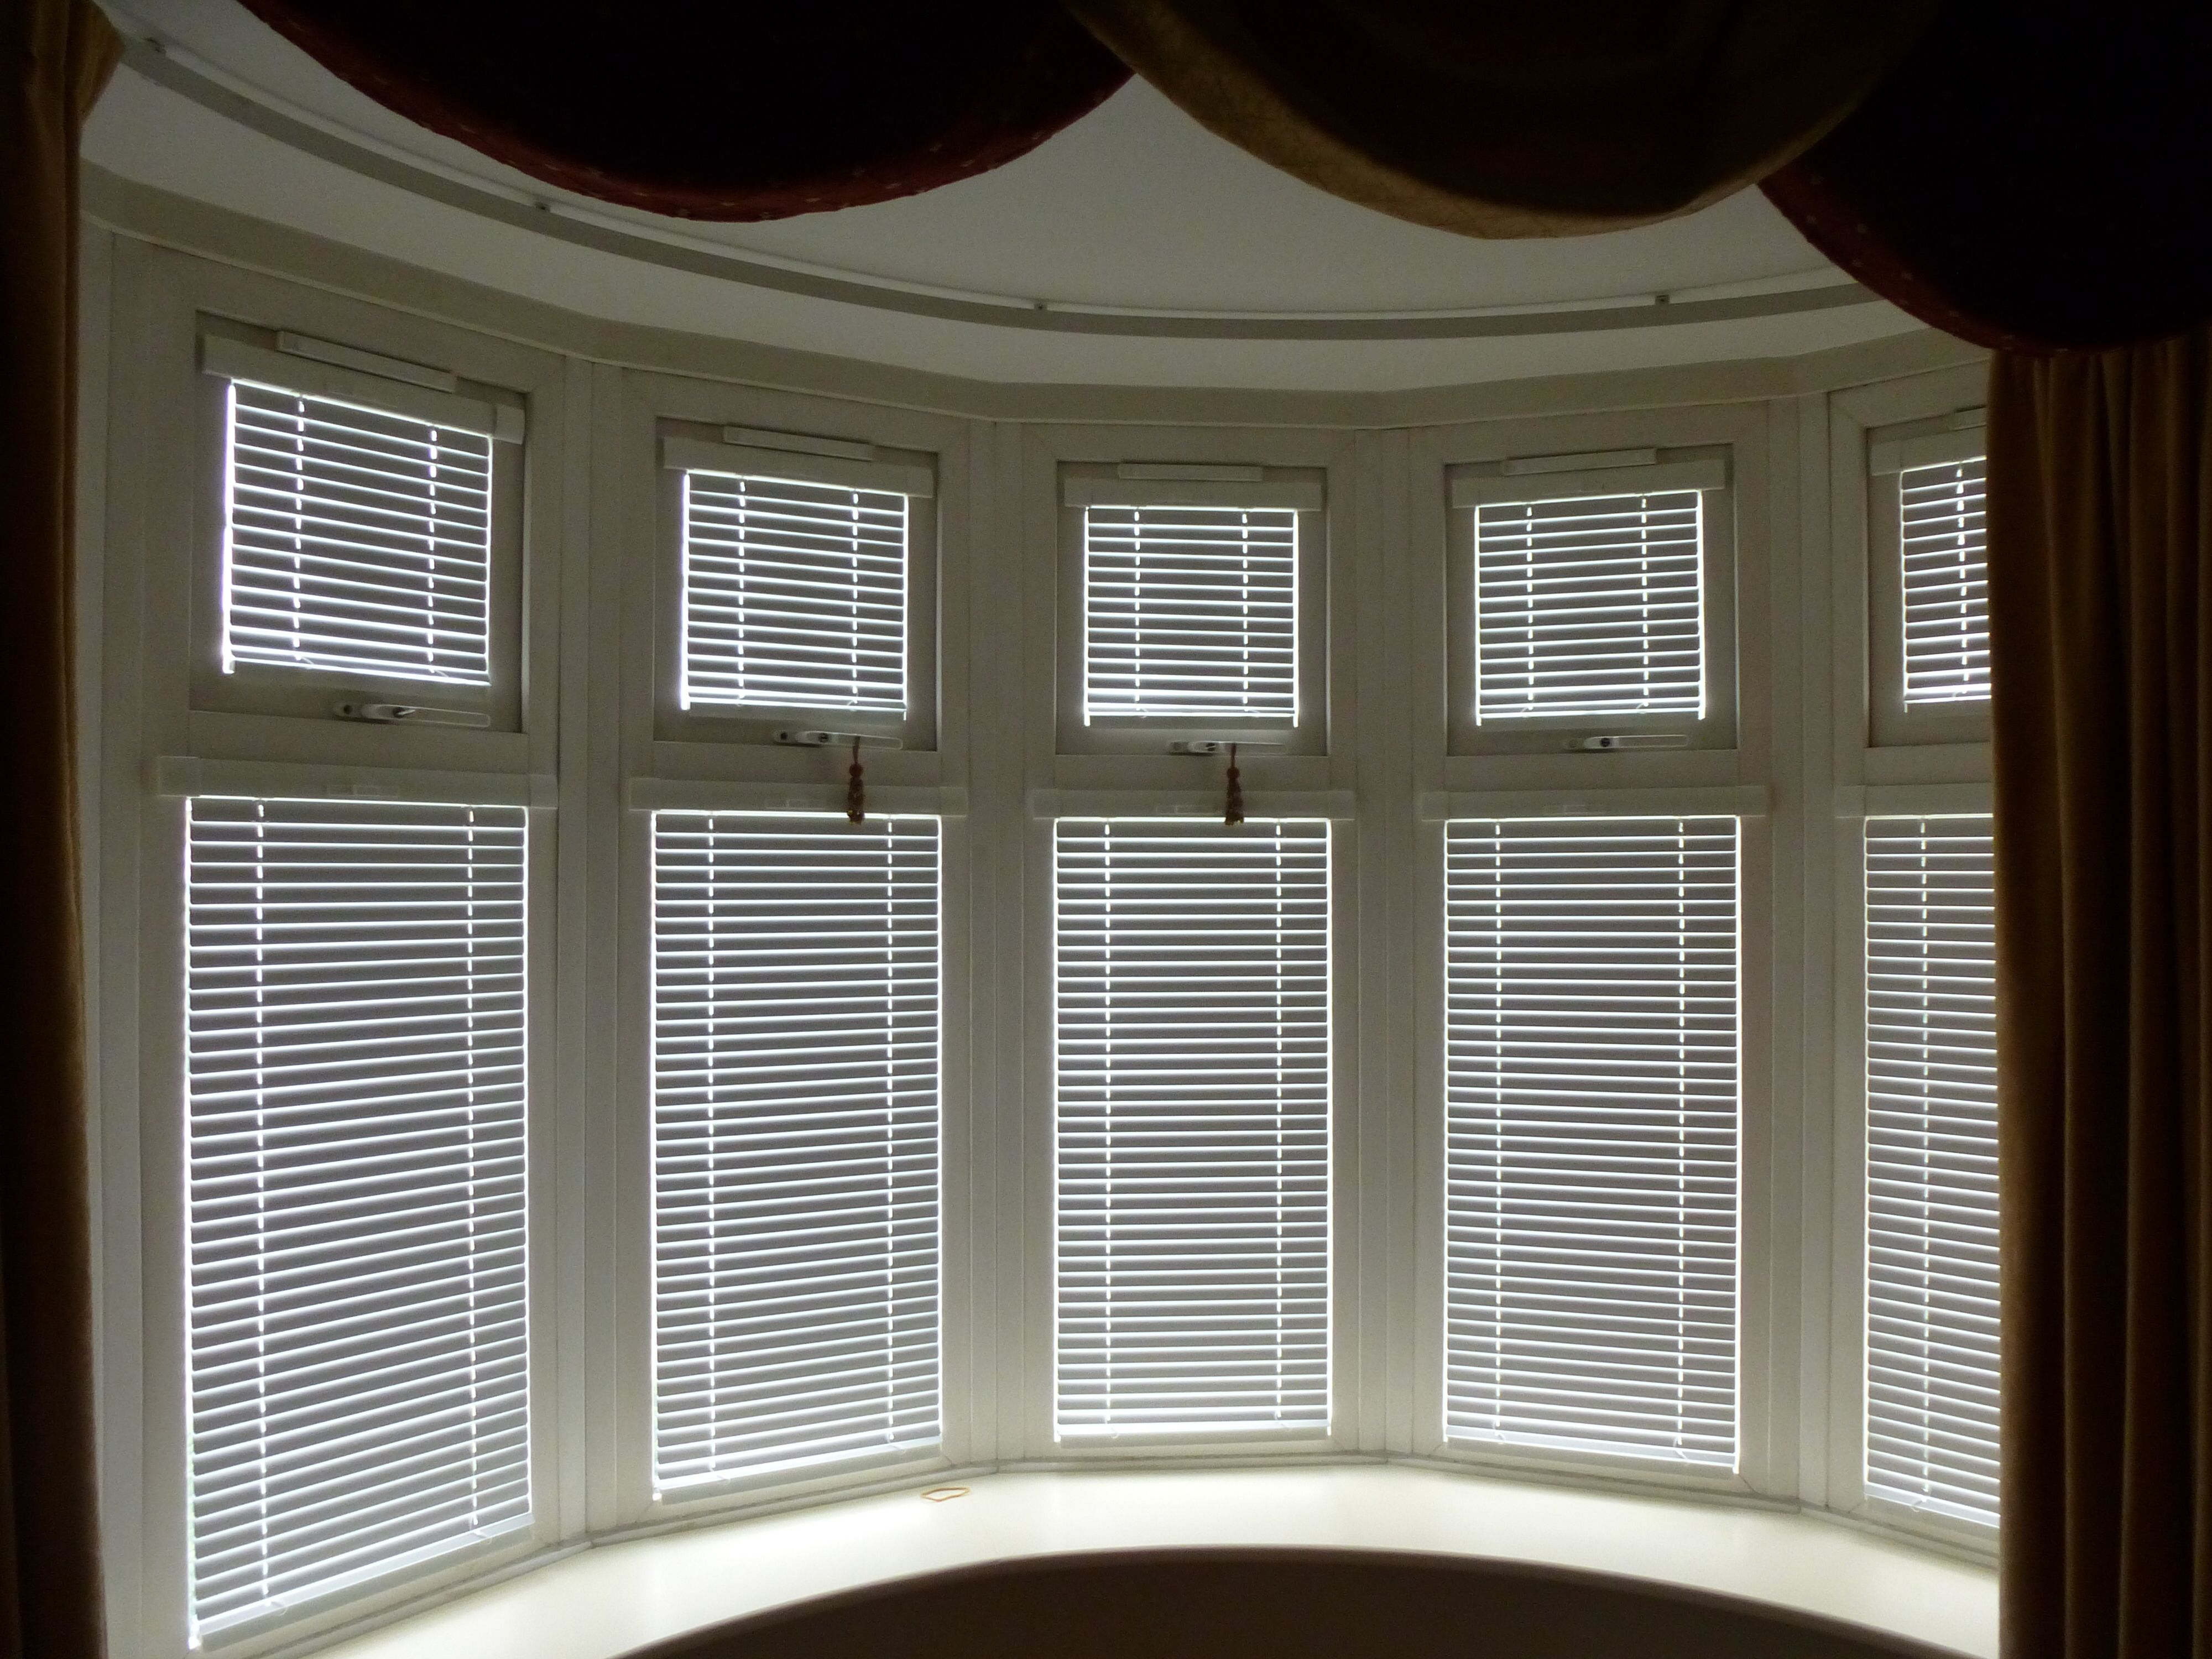 Intu Venetian blinds working with this band bay window